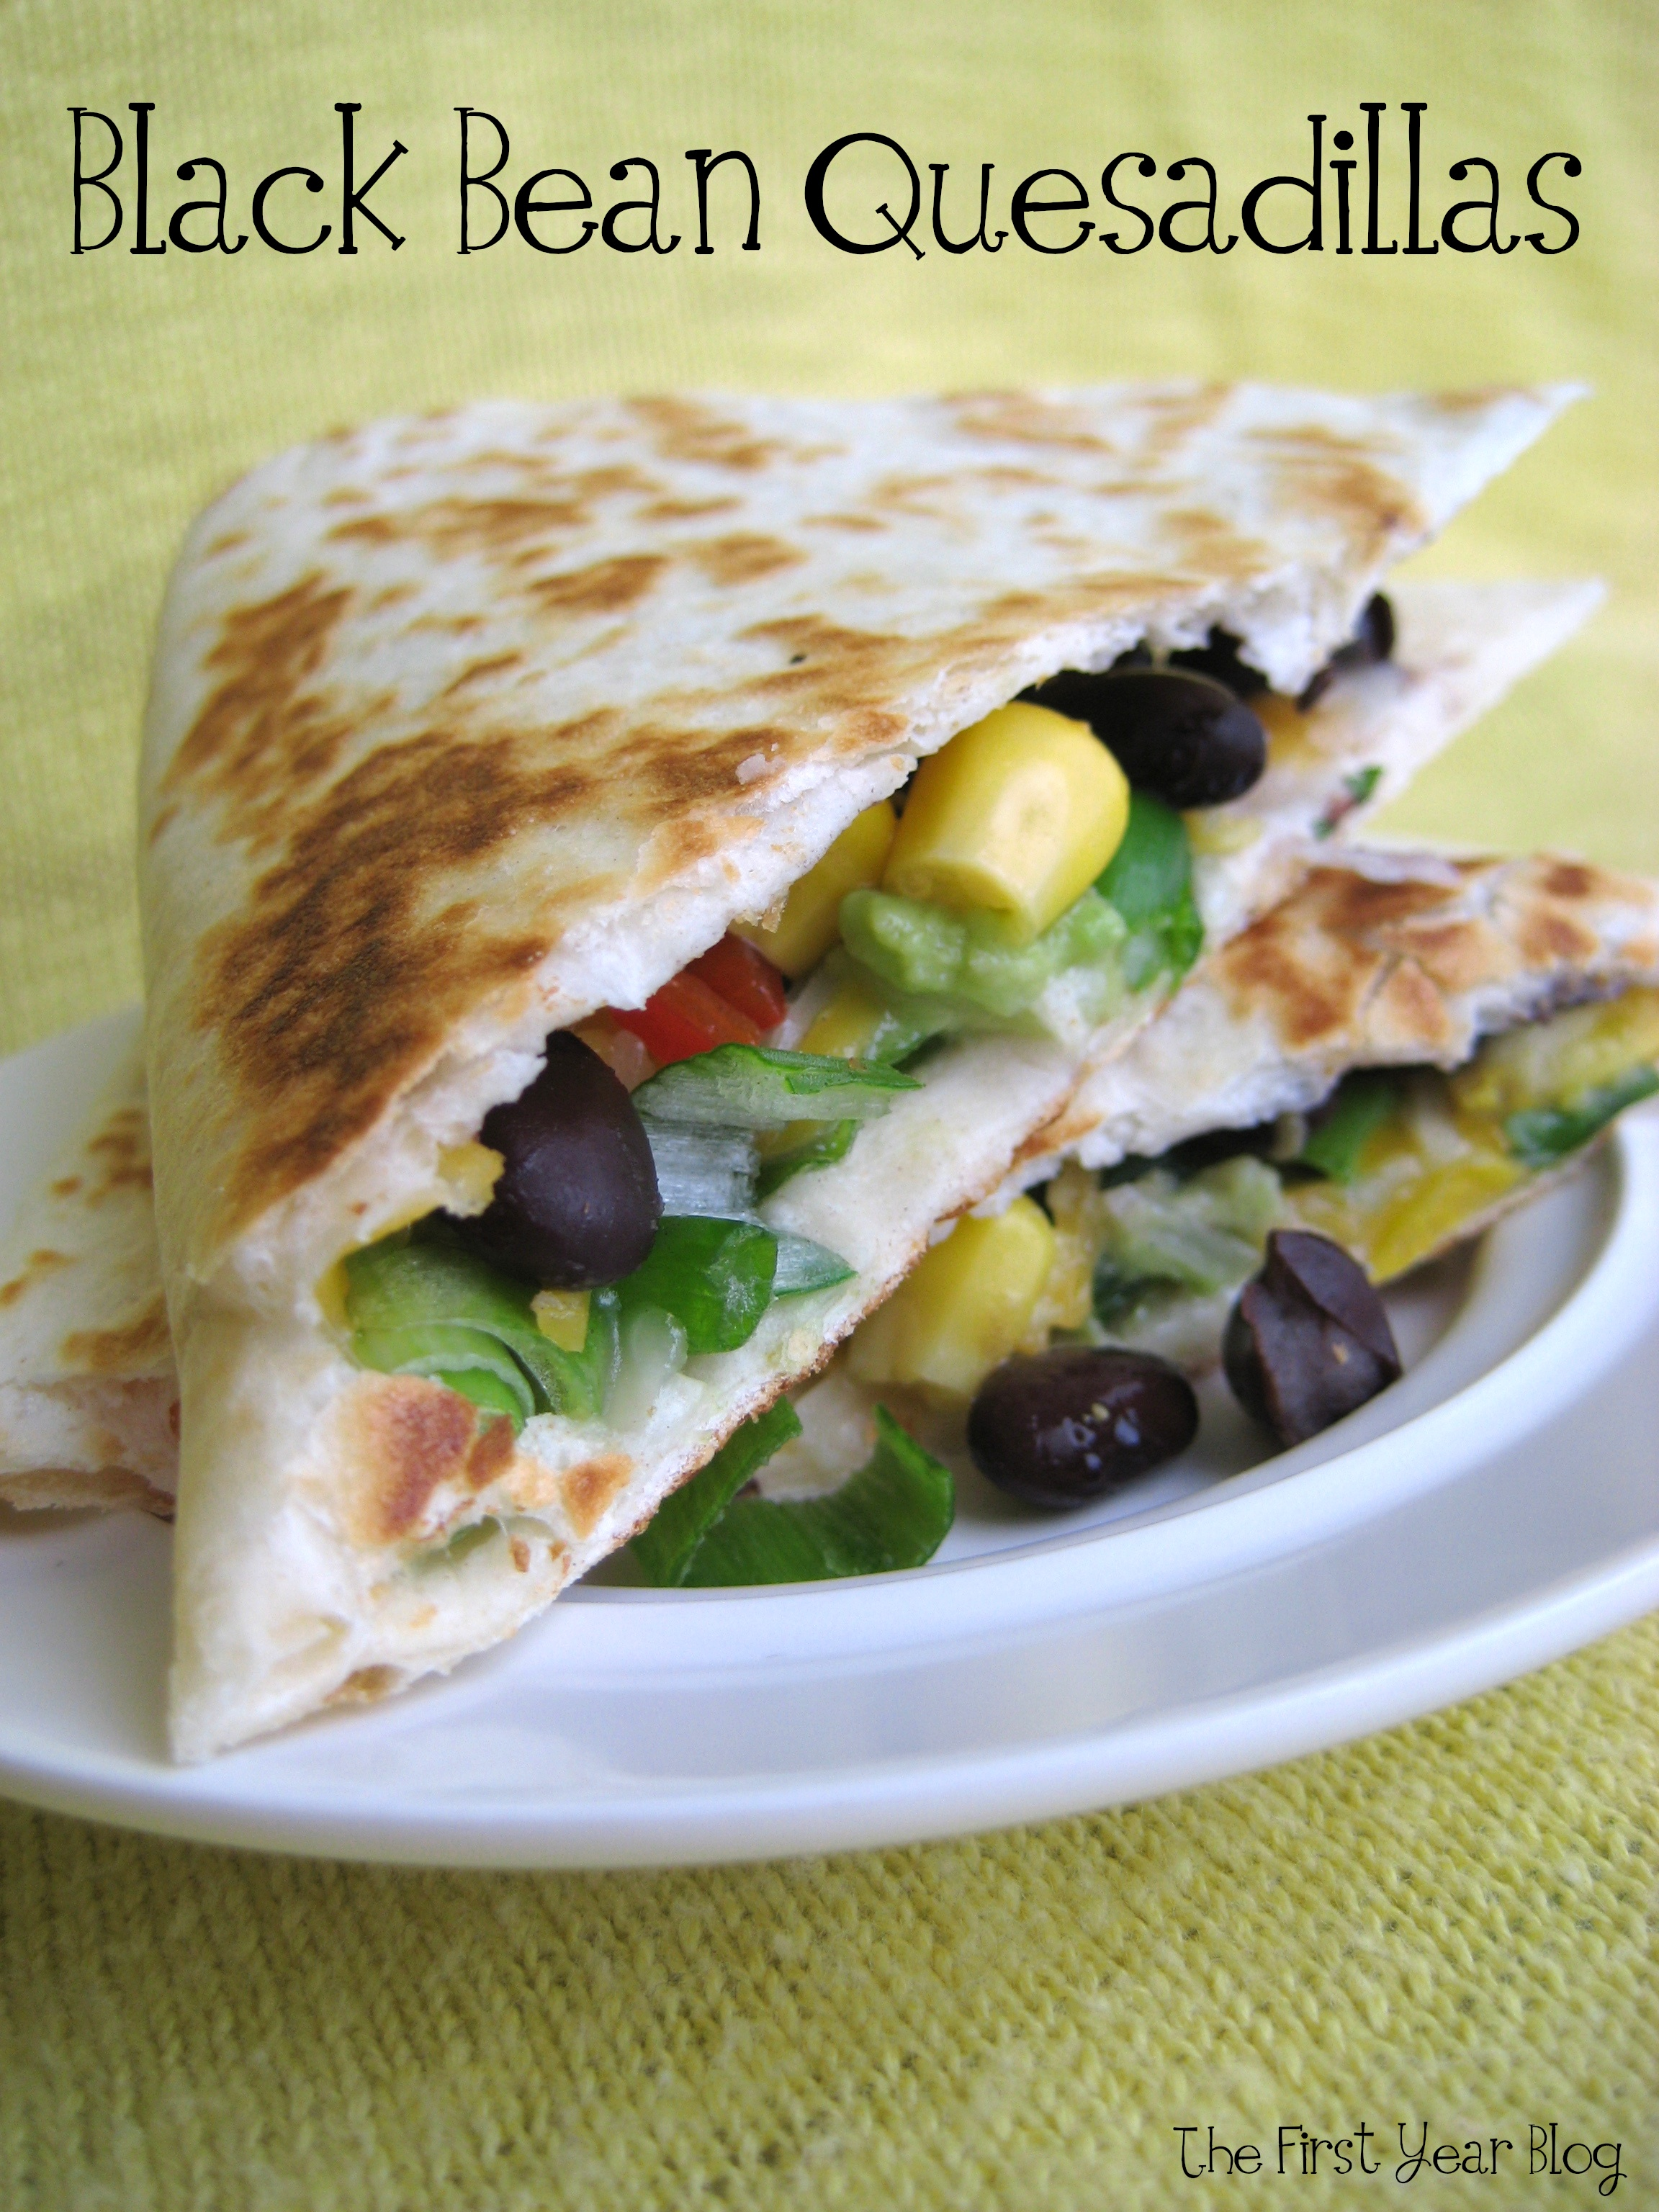 Black Bean Quesadillas - The First Year Blog #BlackBeanQuesadillas